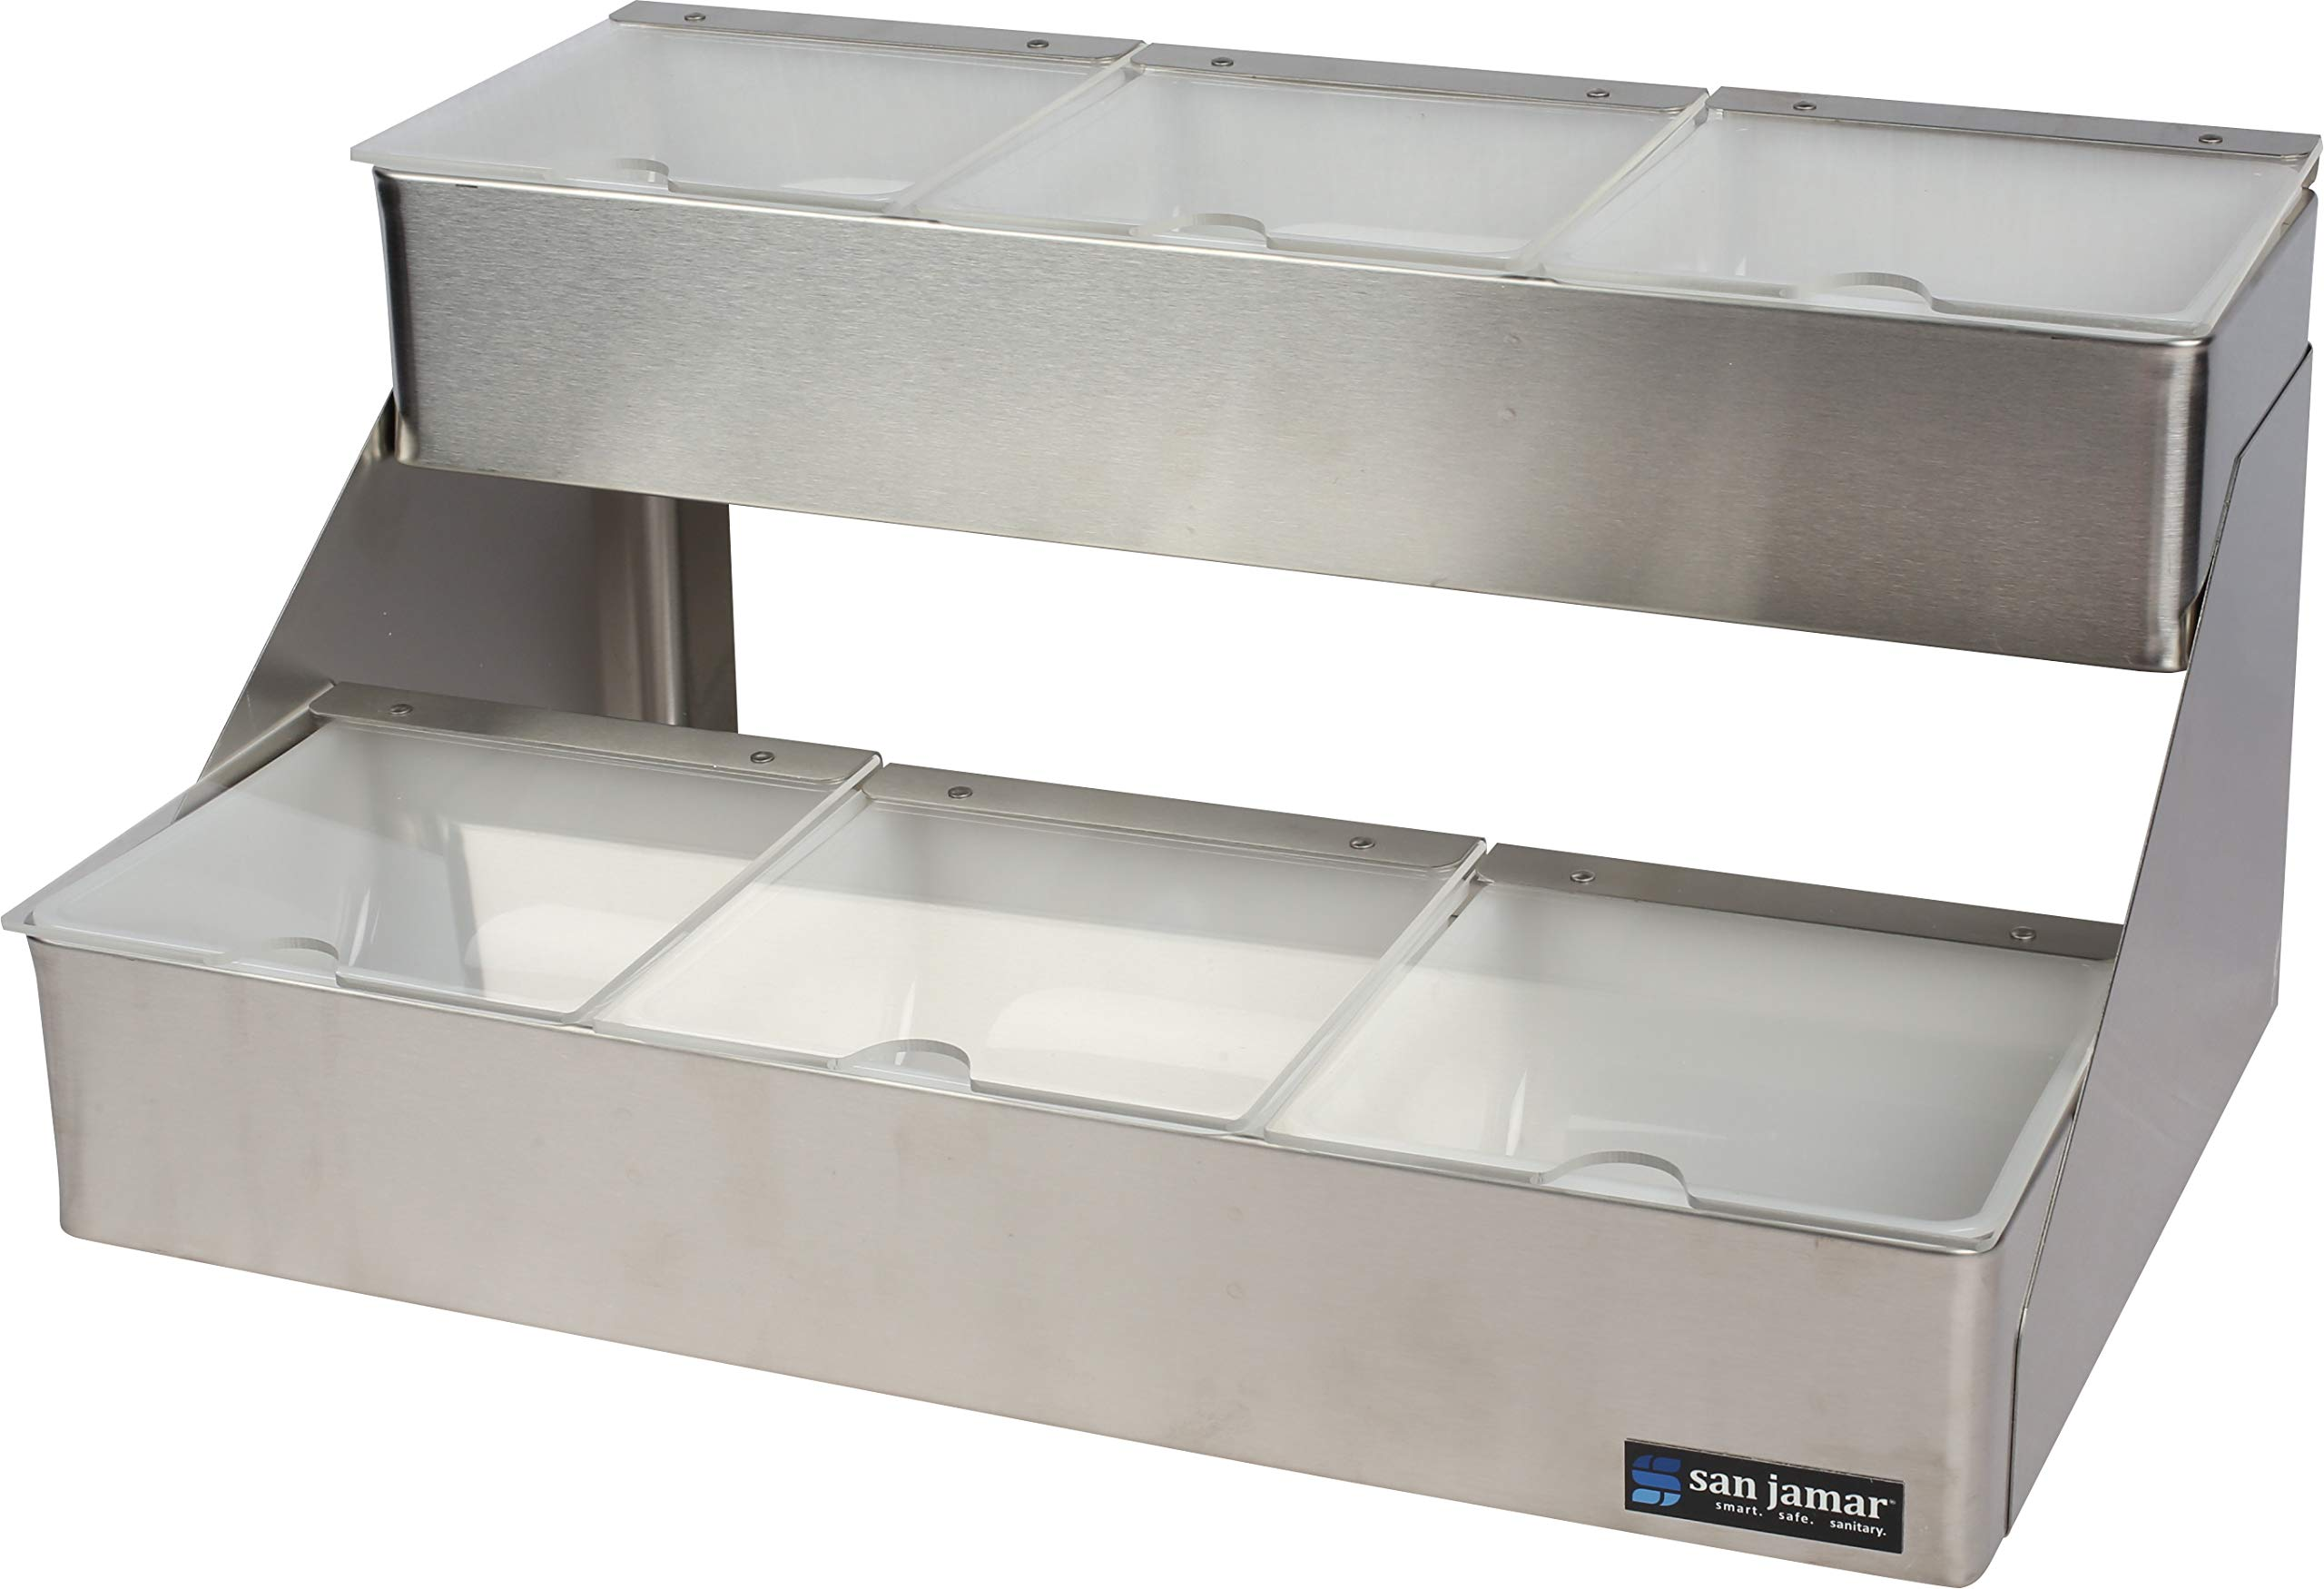 San Jamar B4706INL San Jamar B4706INL 6-Quart Stepped Tray with Notched Lids, Stainless Steel, Stainless Steel